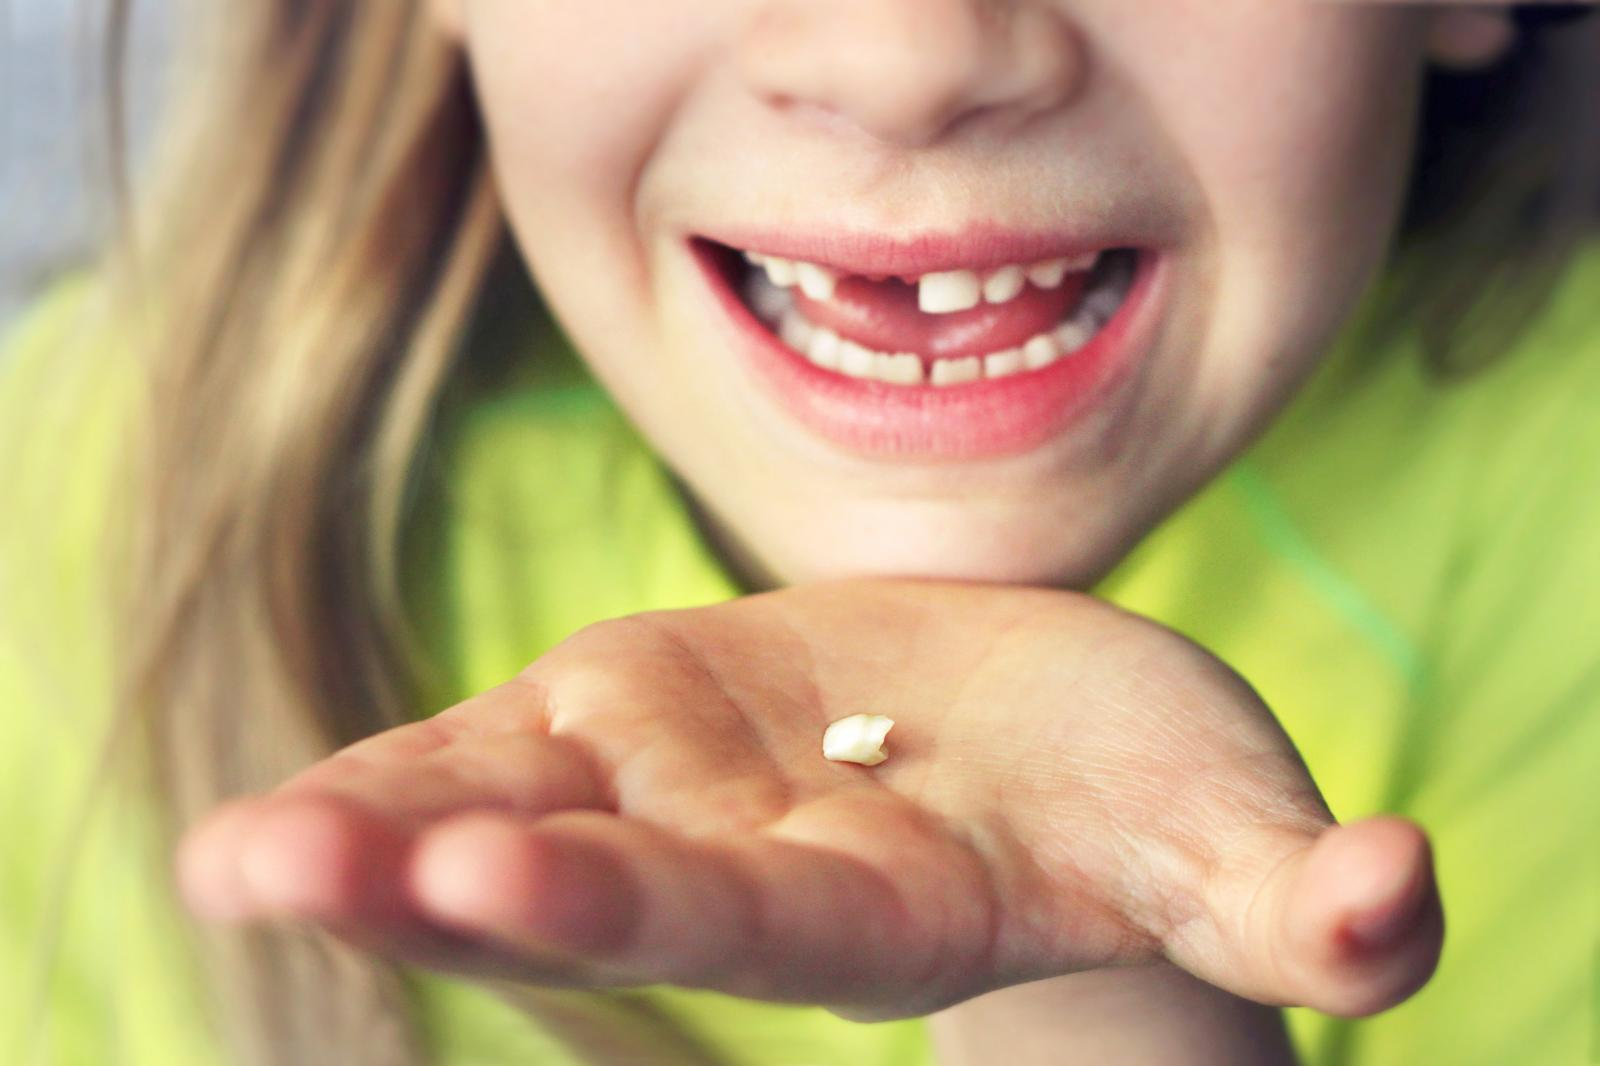 Baby tooth held in the hand of a girl. In the background the smiling girl